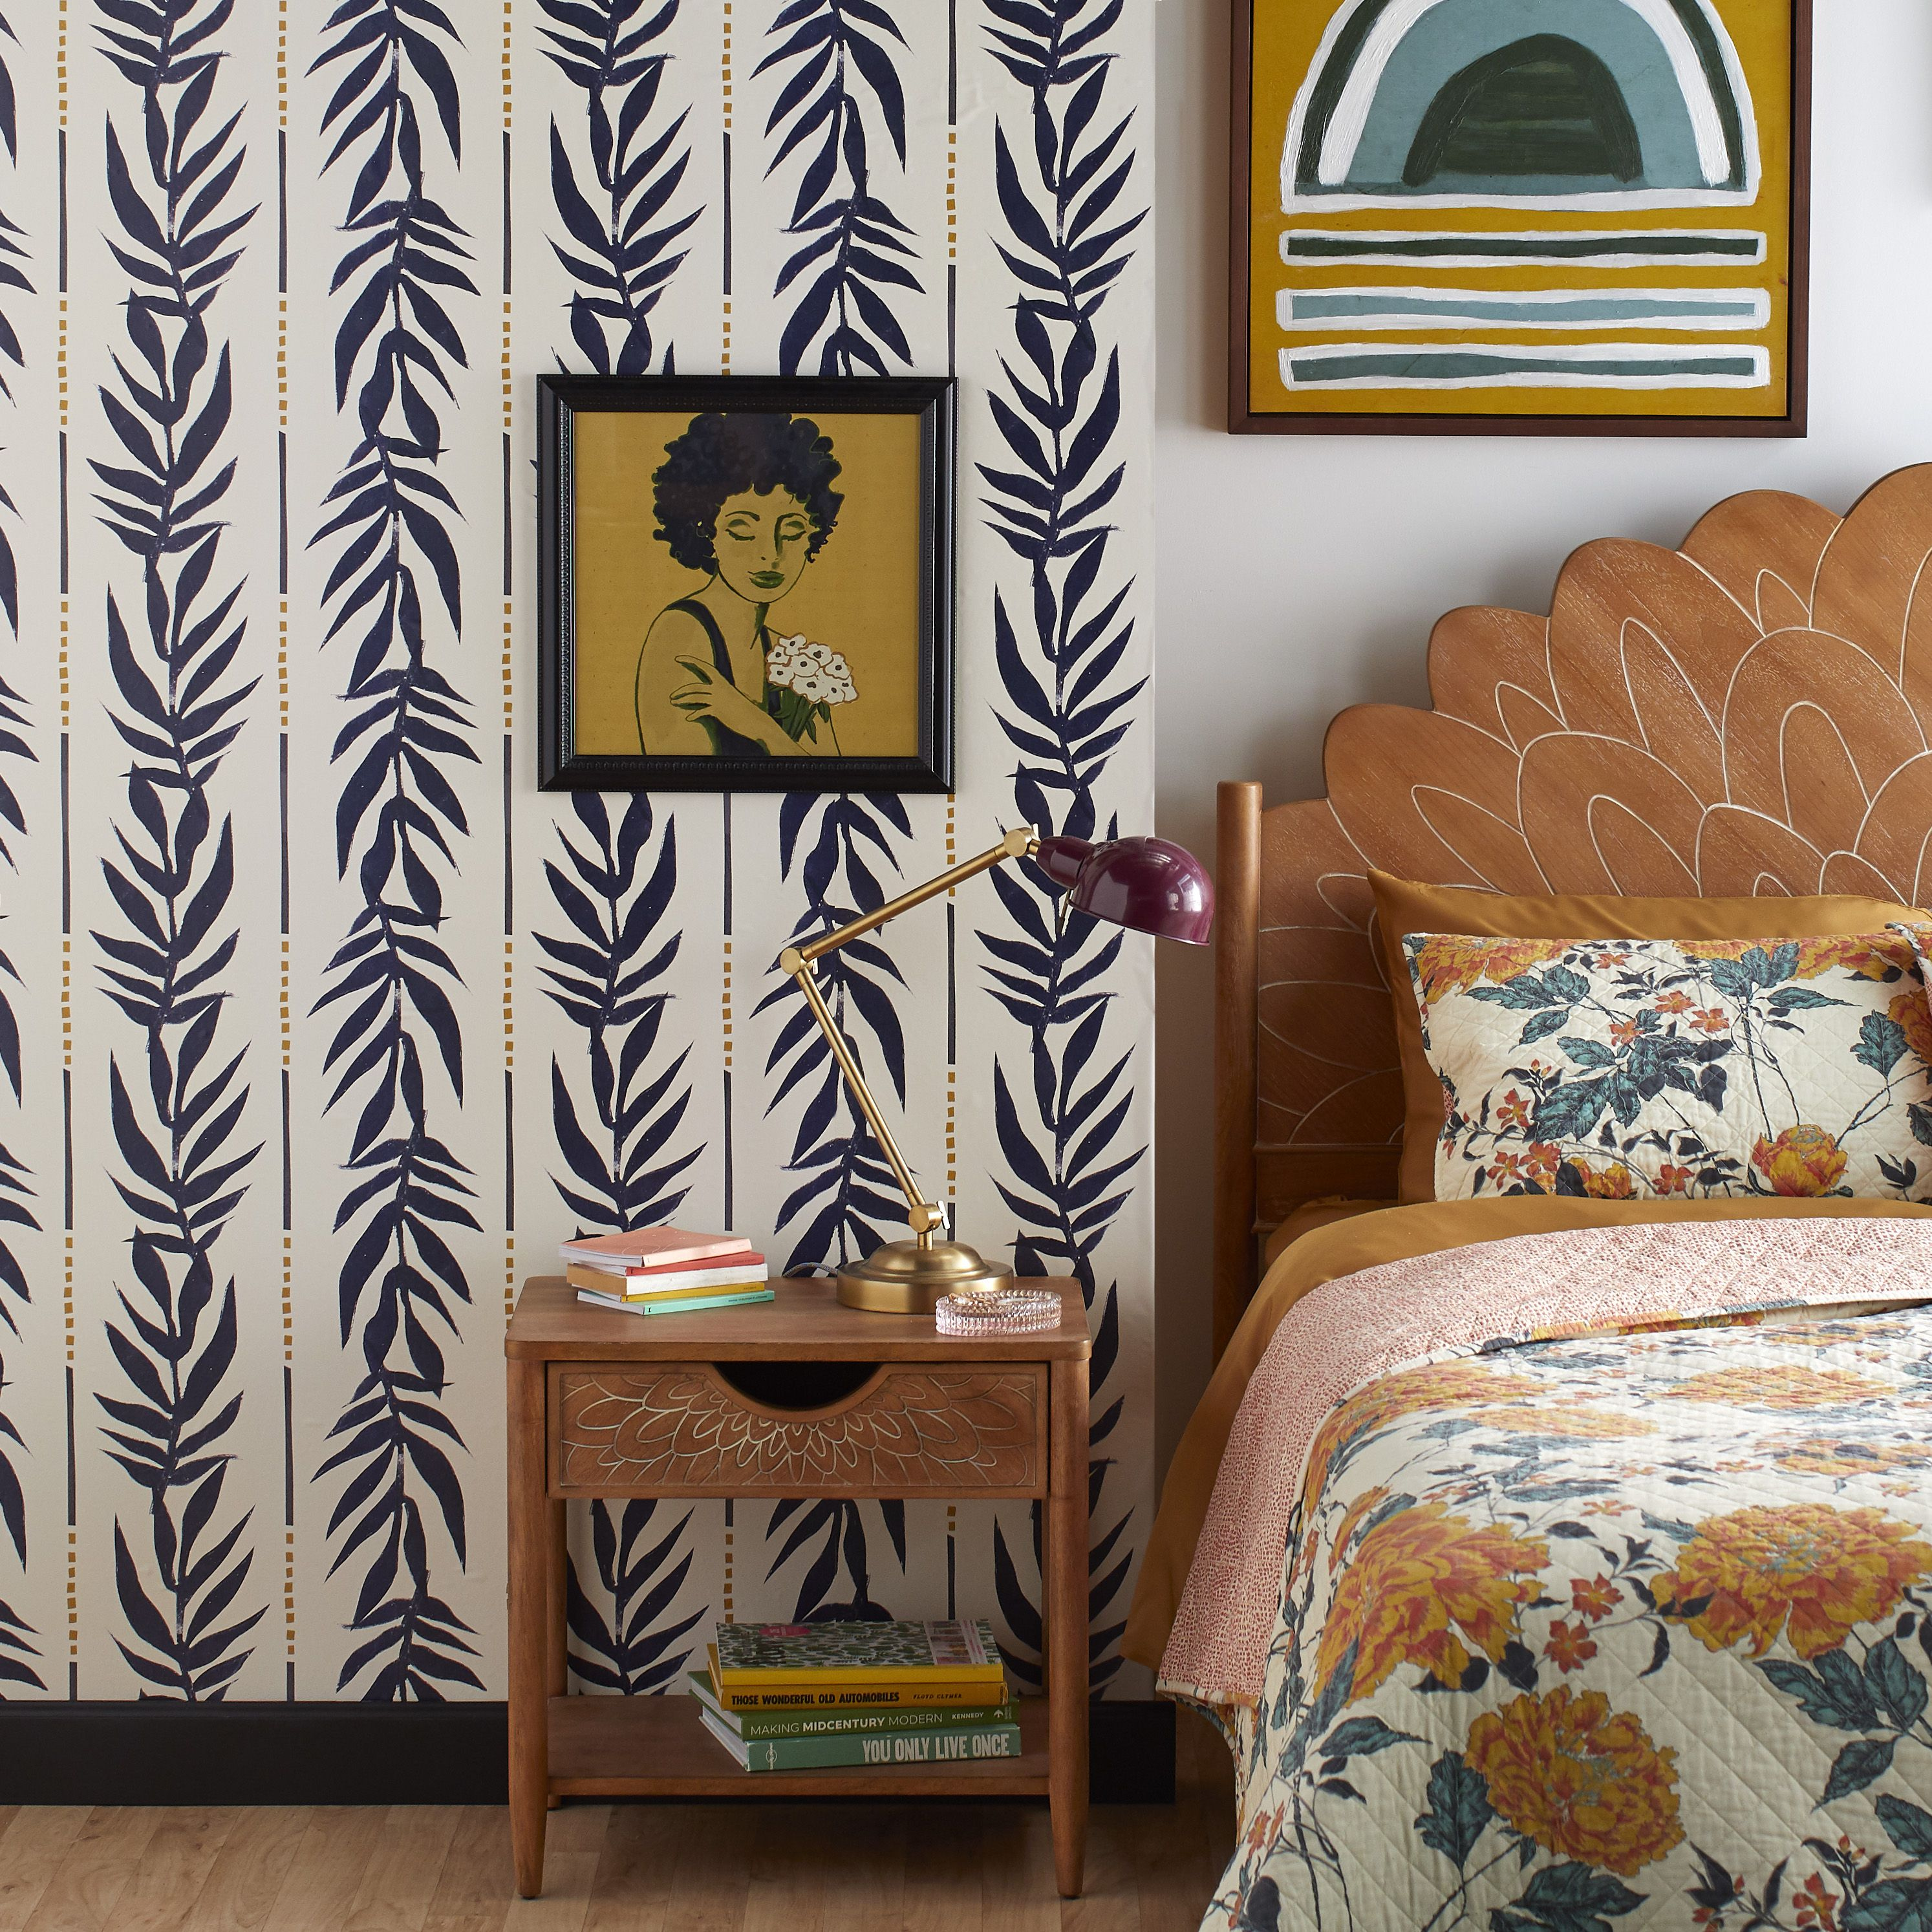 Navy Vintage Palm Peel And Stick Wallpaper By Drew Barrymore Flower Home Walmart Com Peel And Stick Wallpaper Home Decor Decor